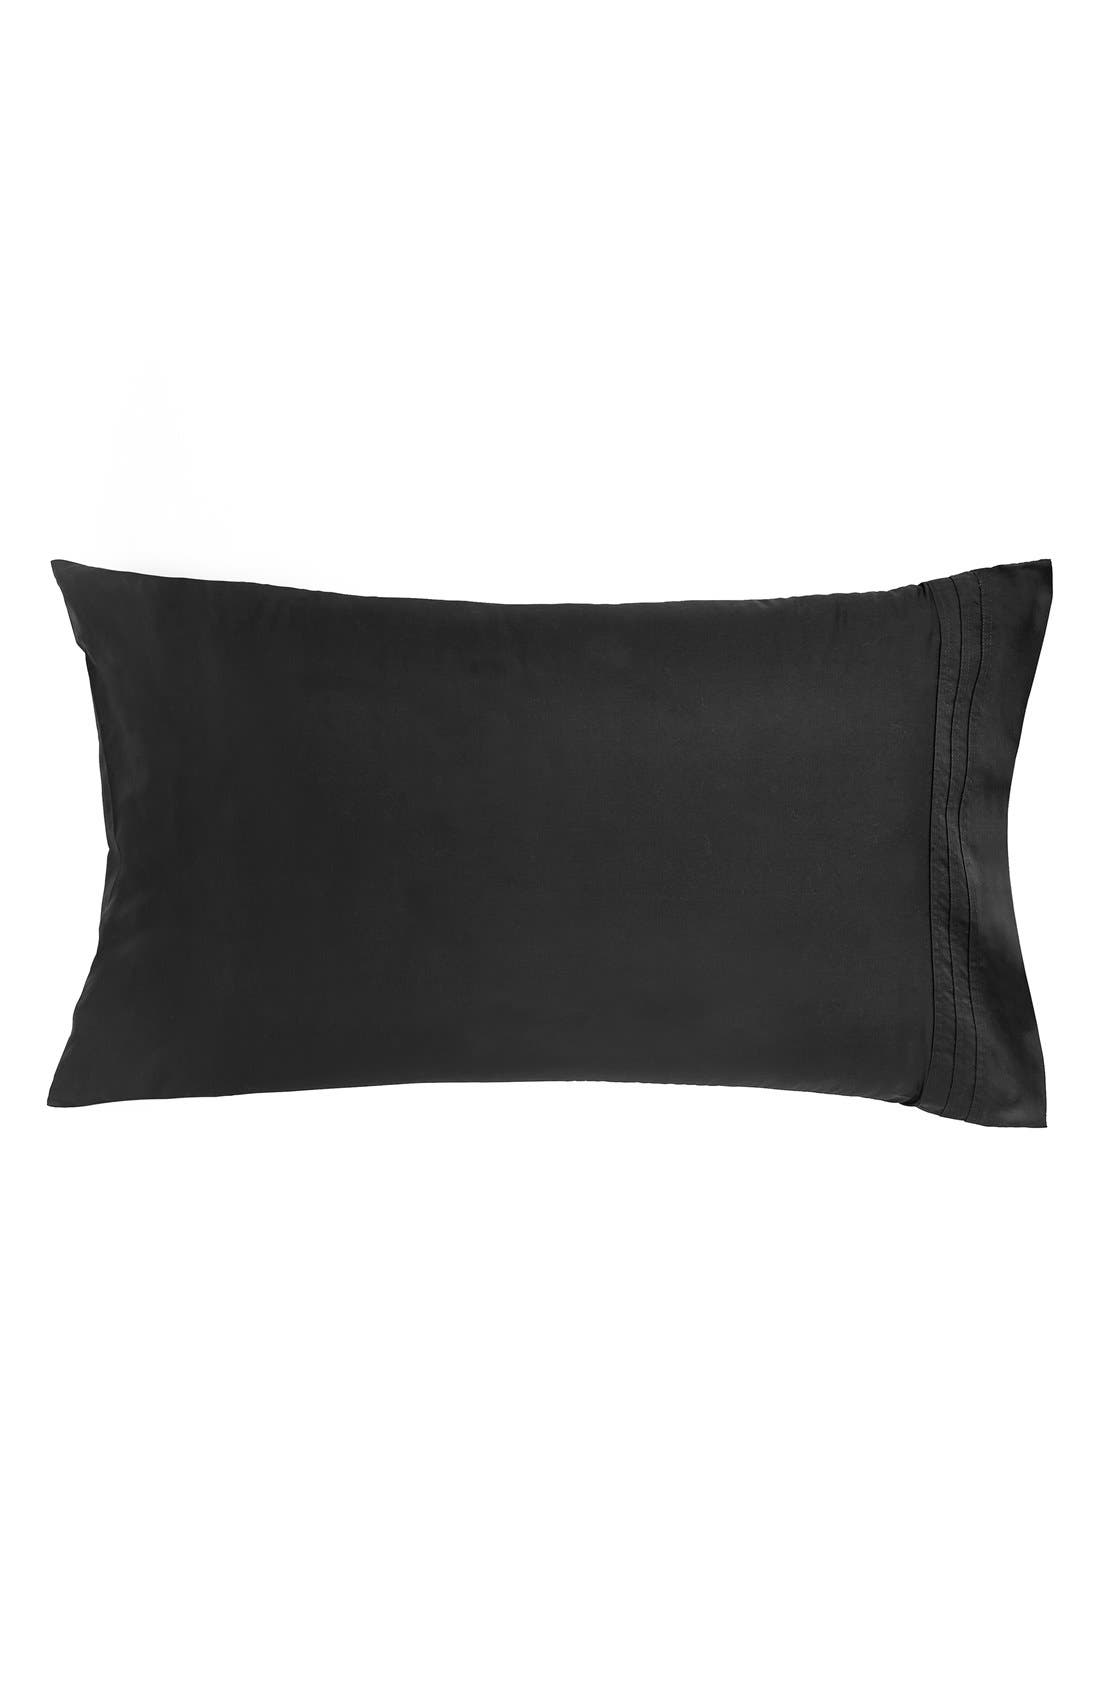 Main Image - Donna Karan 510 Thread Count Pillowcase (Online Only)